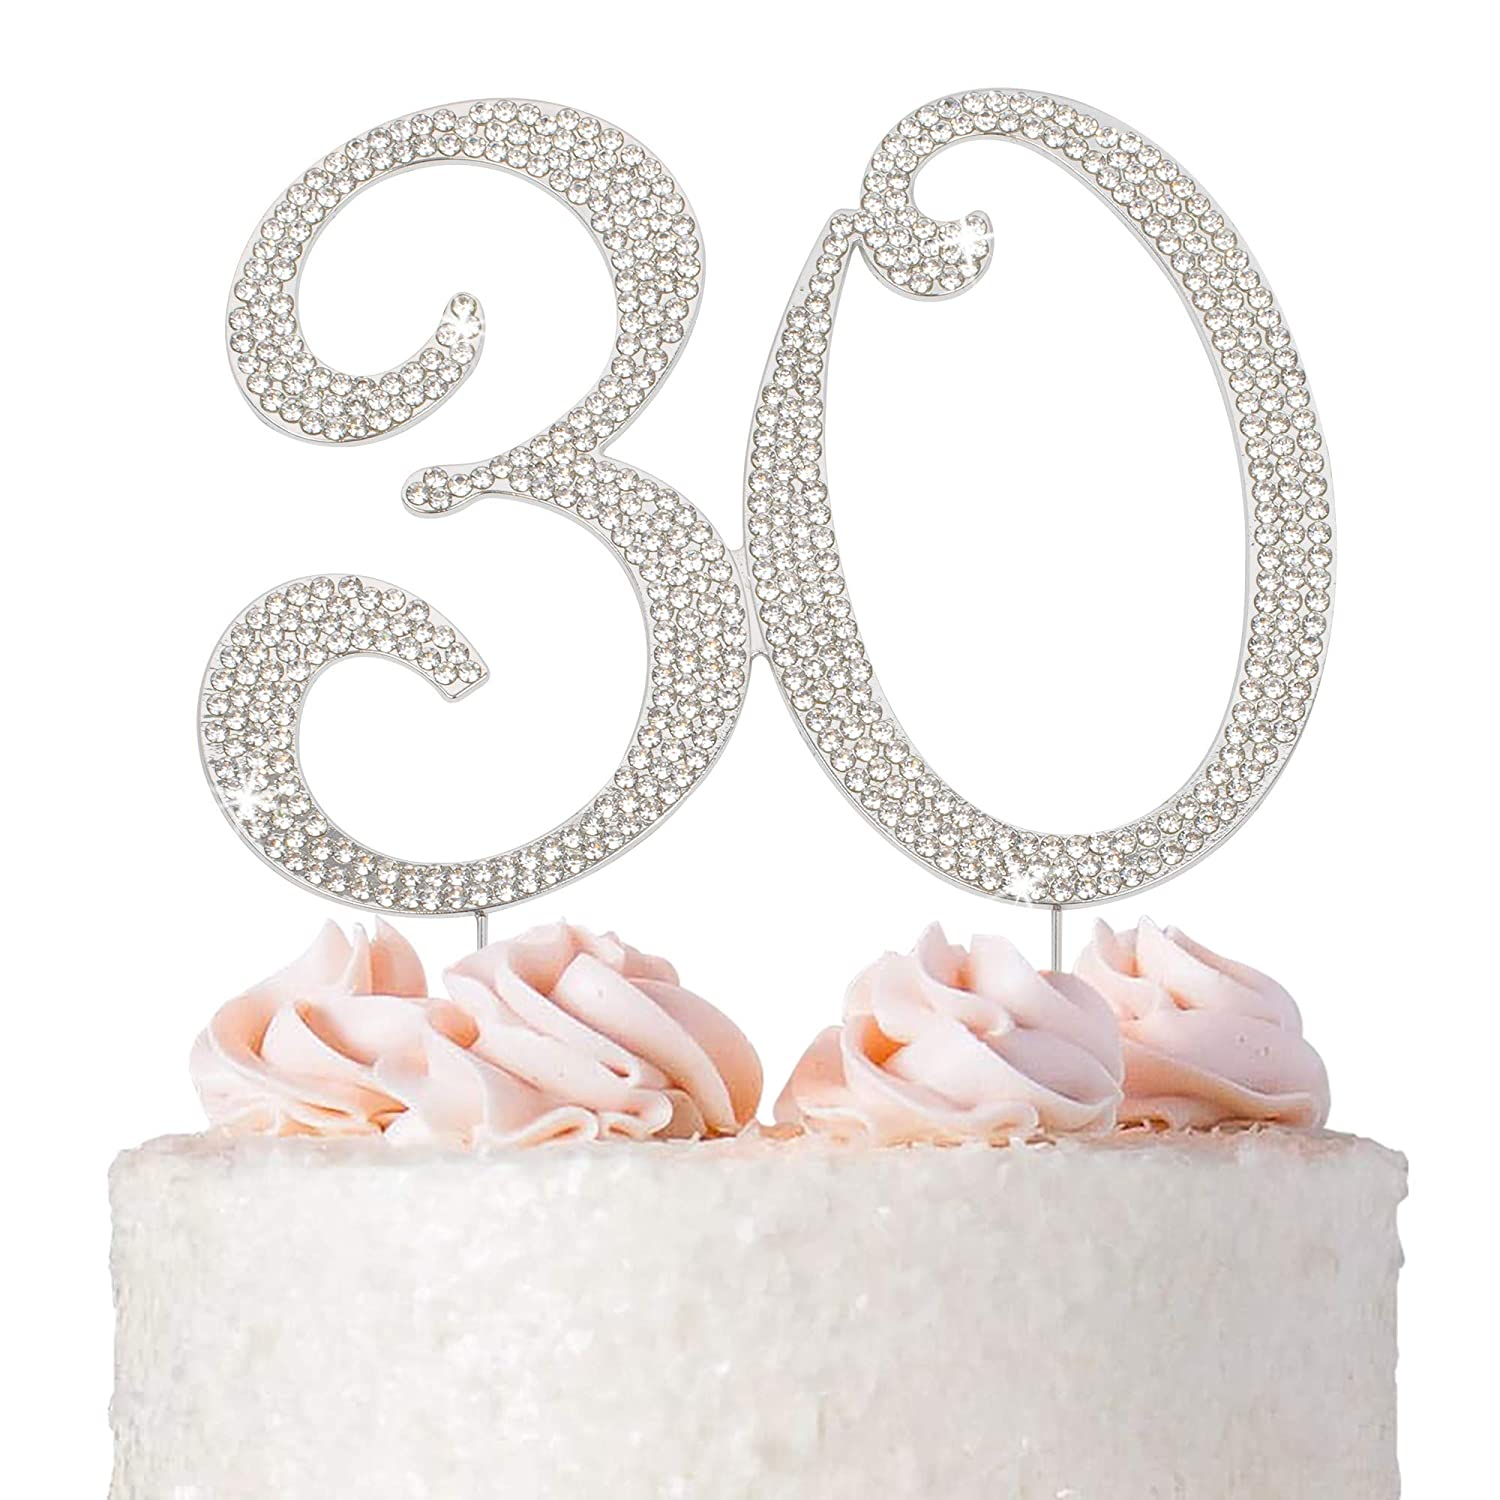 30 Cake Sales for sale Topper - Premium Silver discount Metal Anniver 30th or Birthday